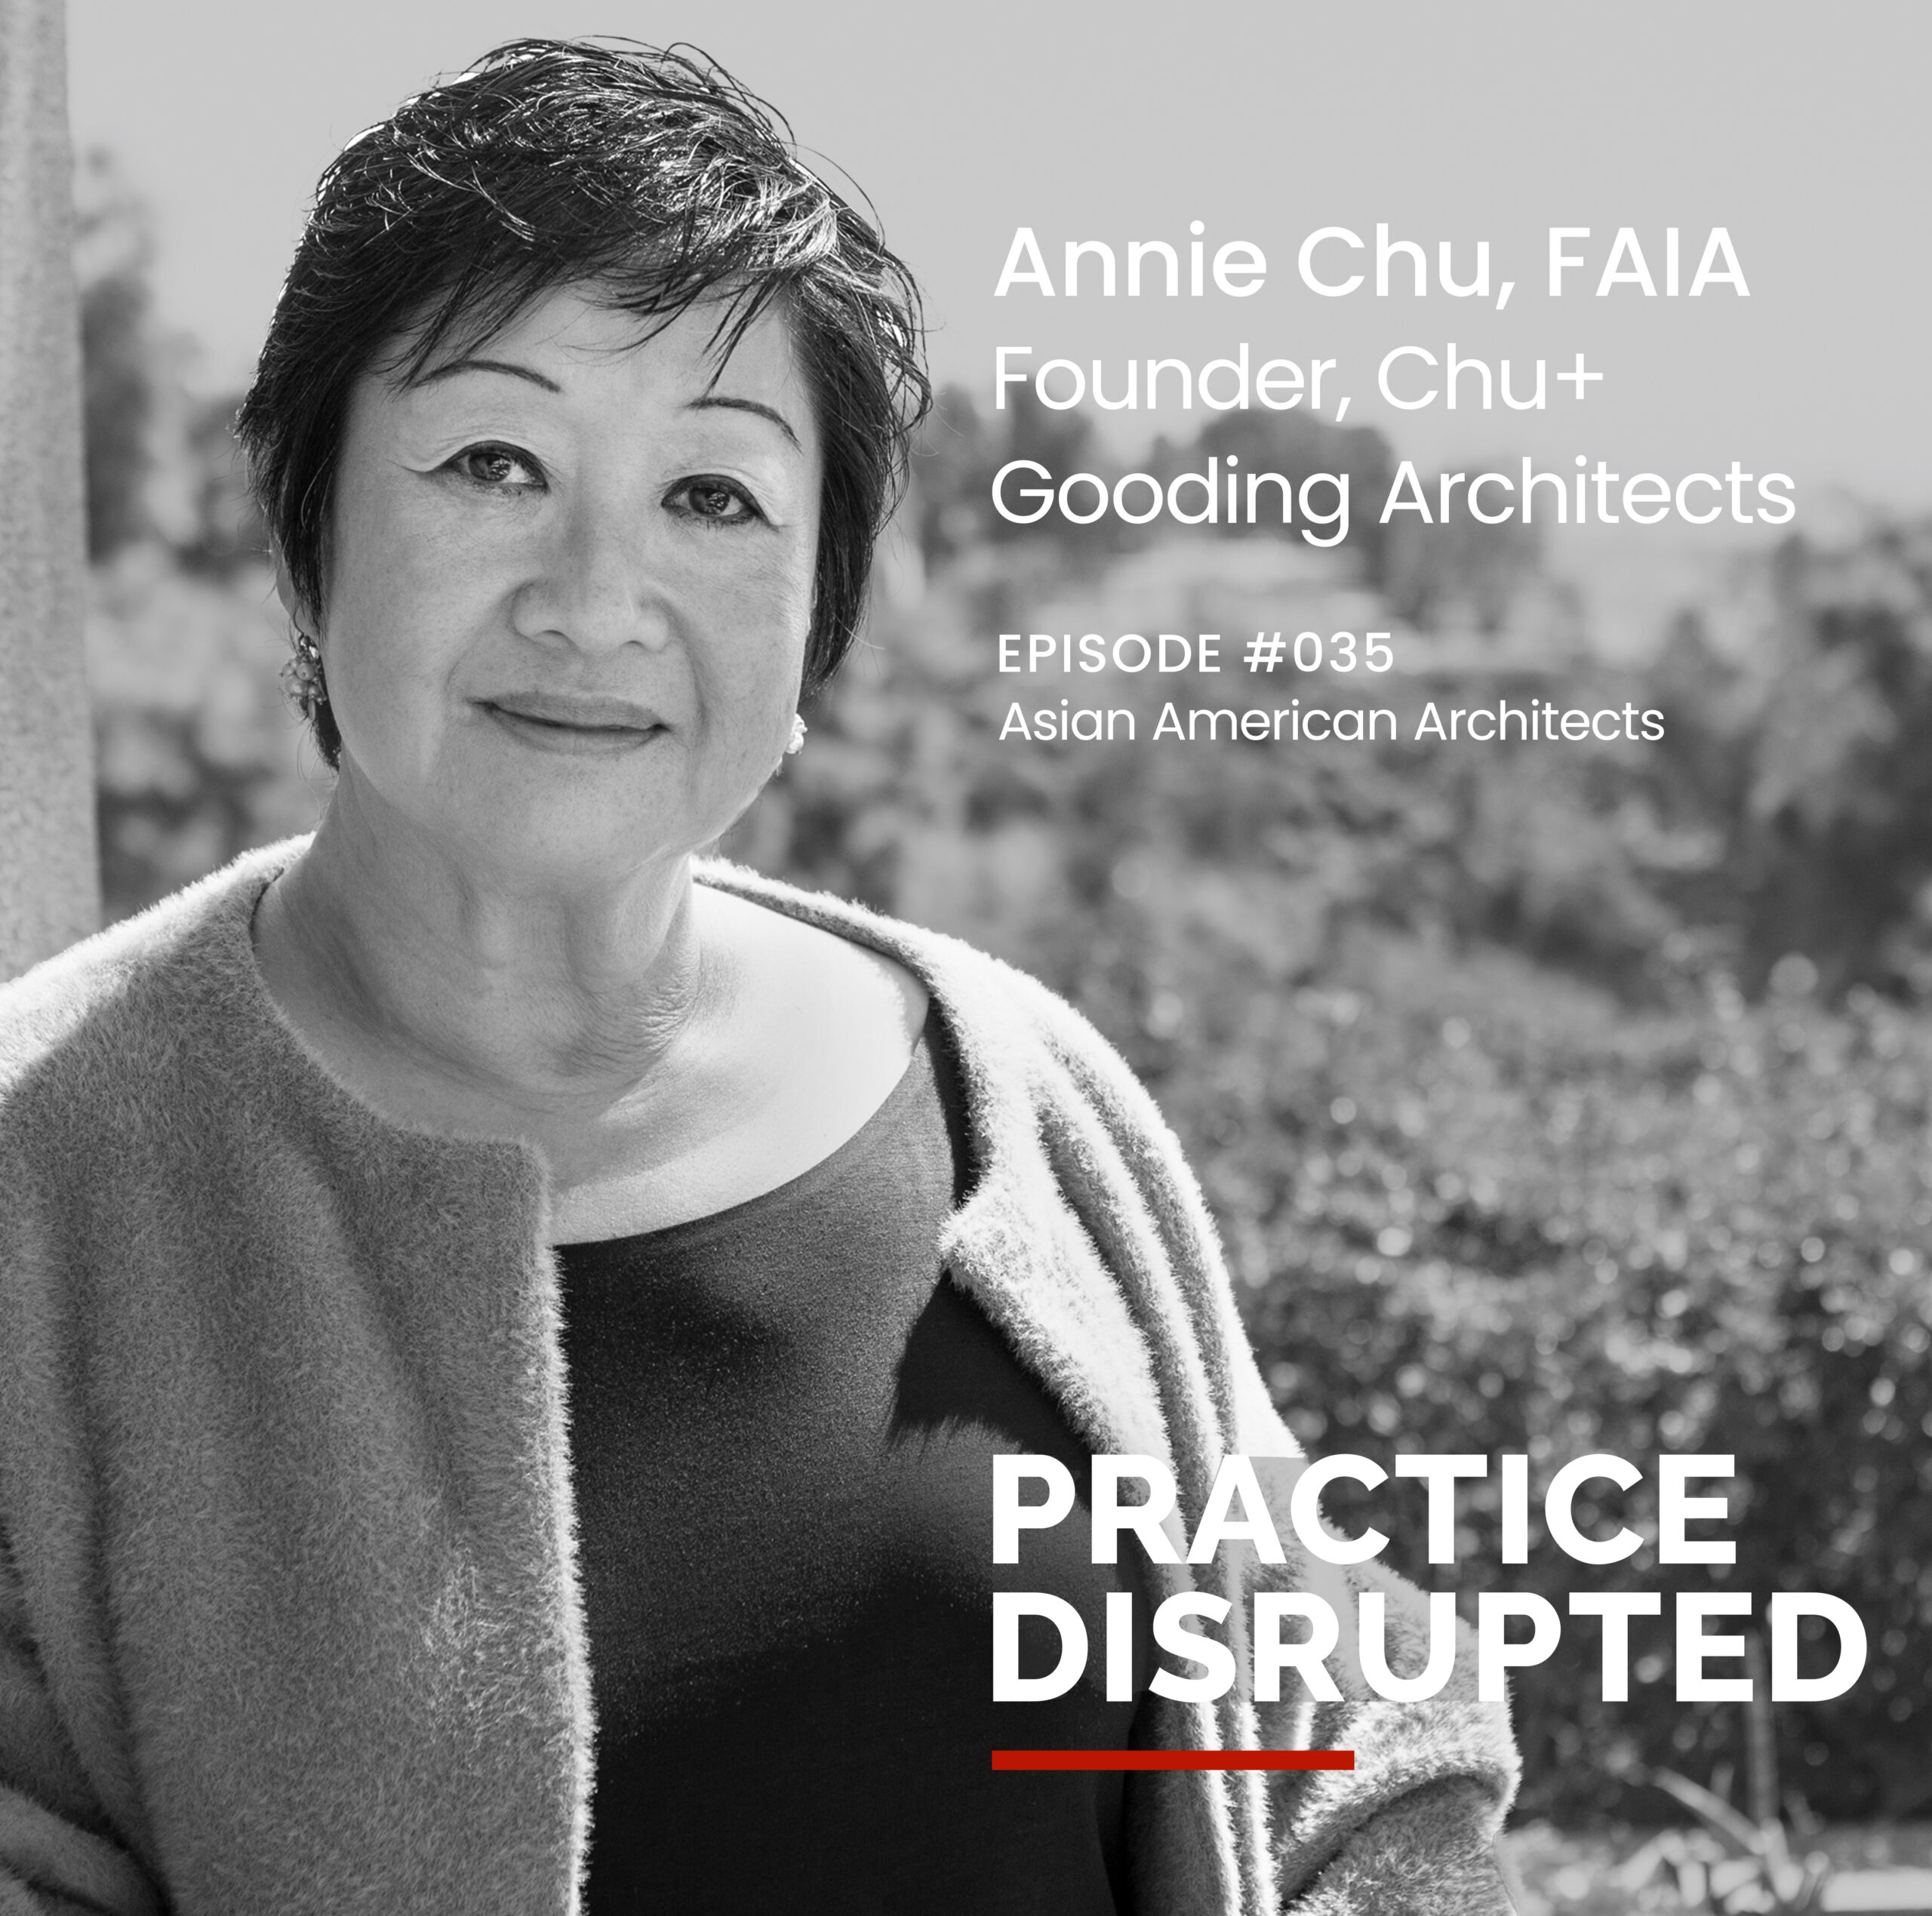 Annie speaks volumes on Practice Disrupted podcast